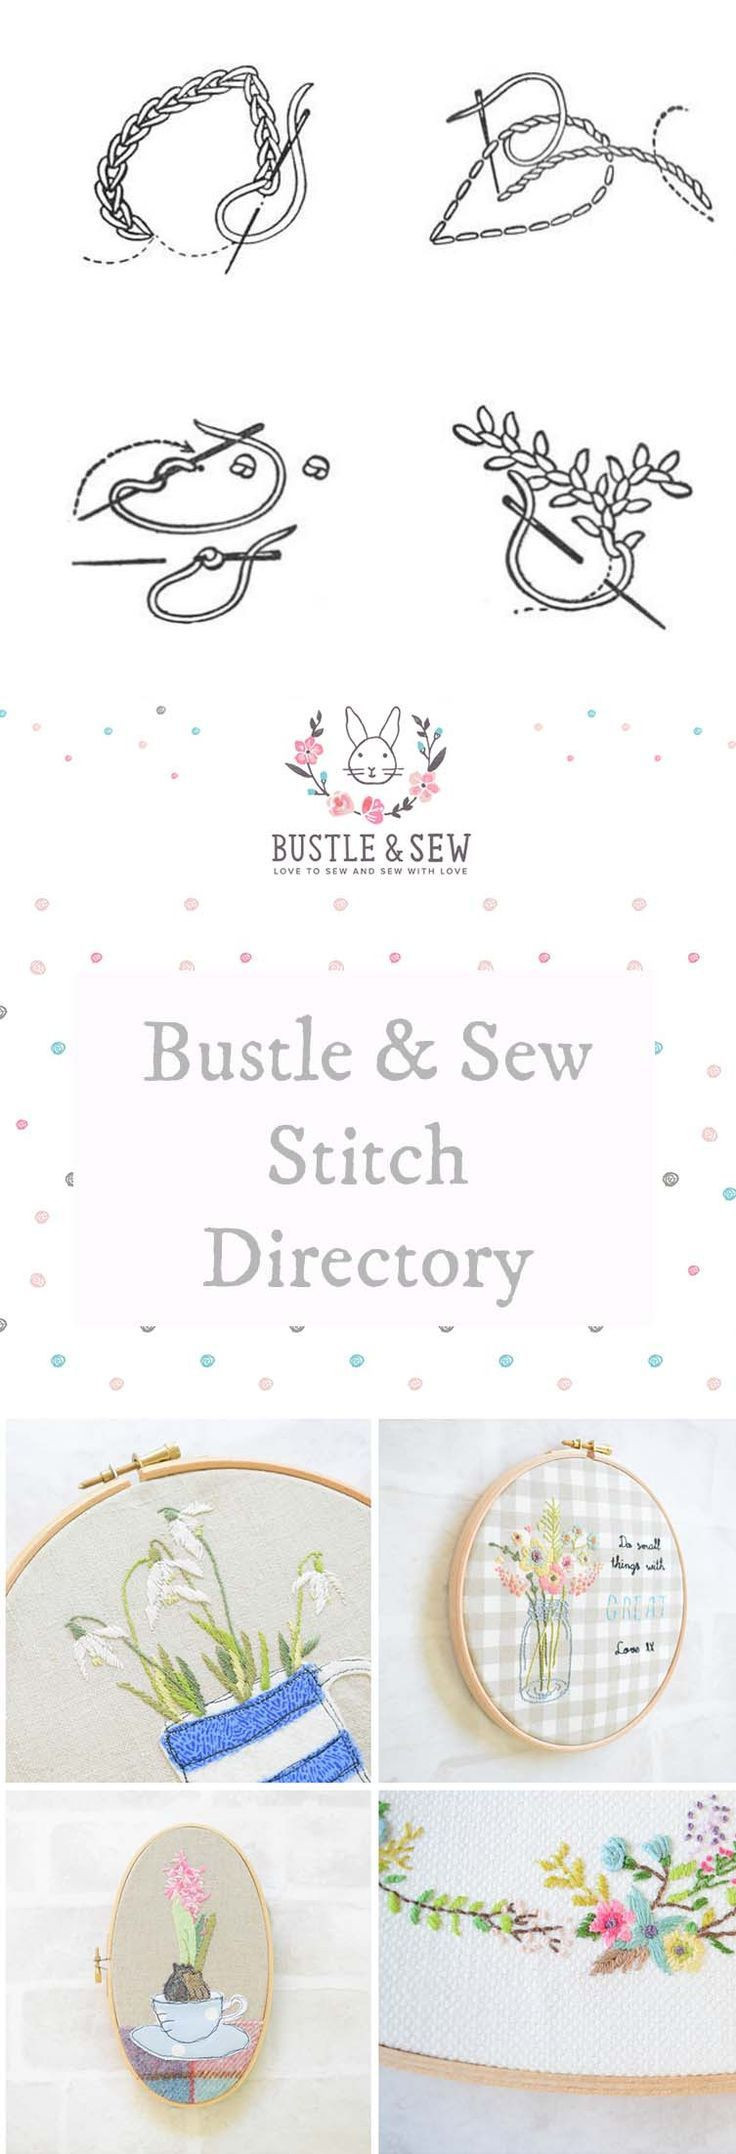 Bustle Sew Stitch Directory Includes Working Instructions For 16